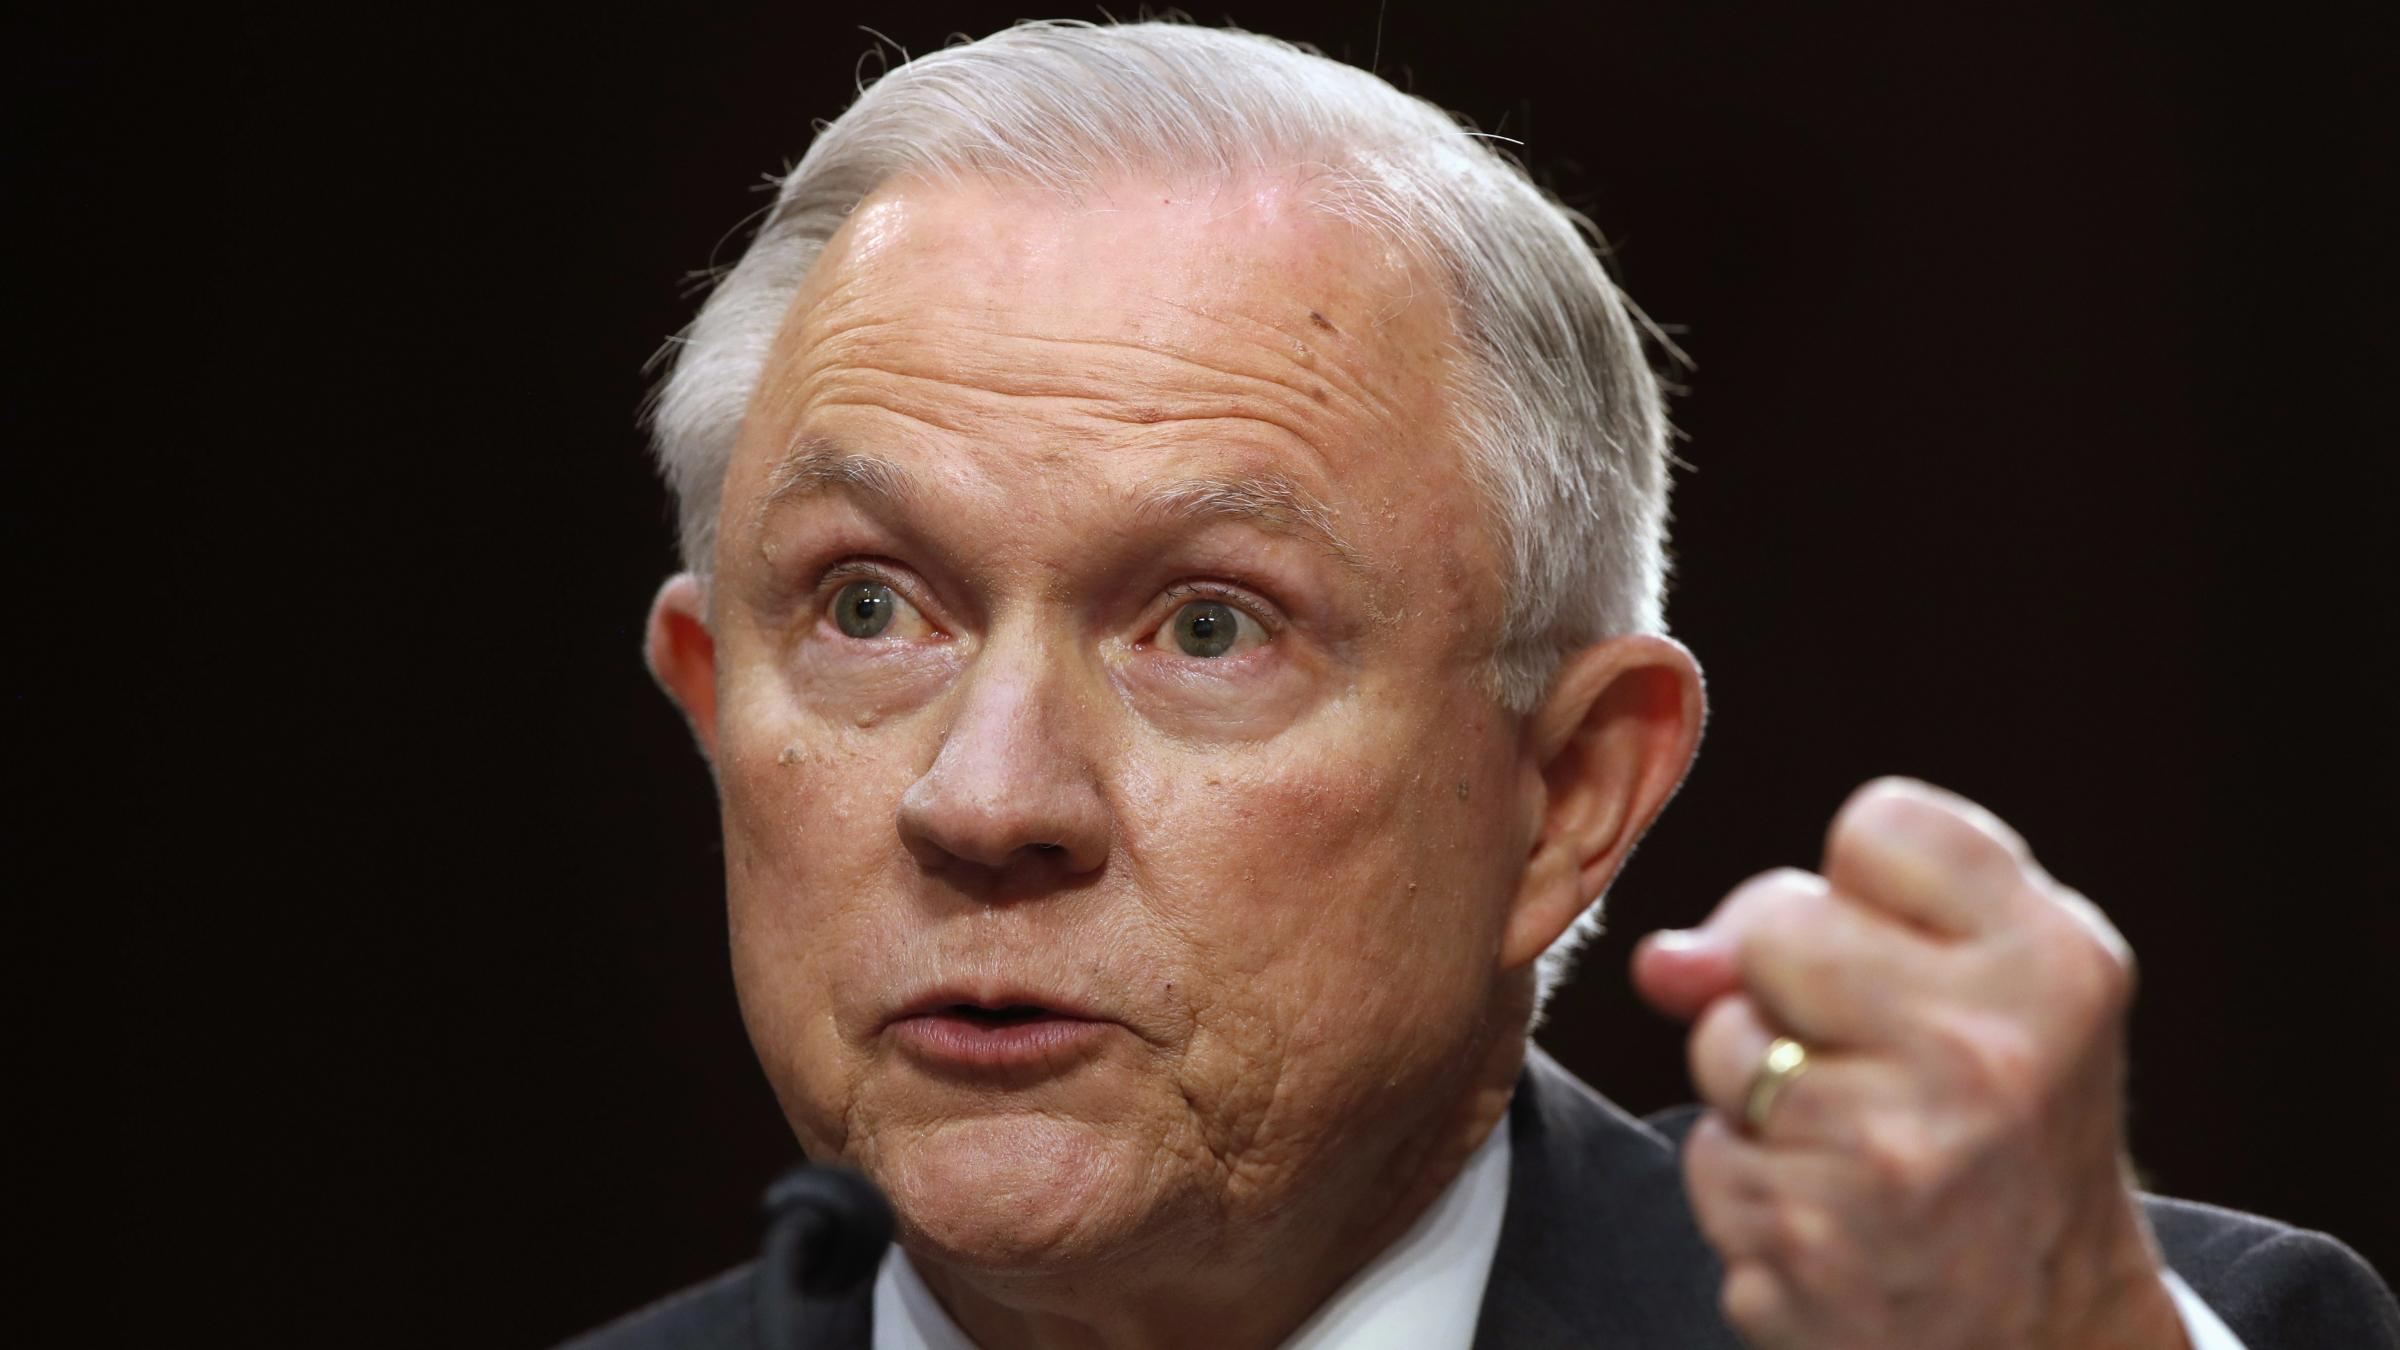 Sessions: Comey was wrong to leak Flynn memo